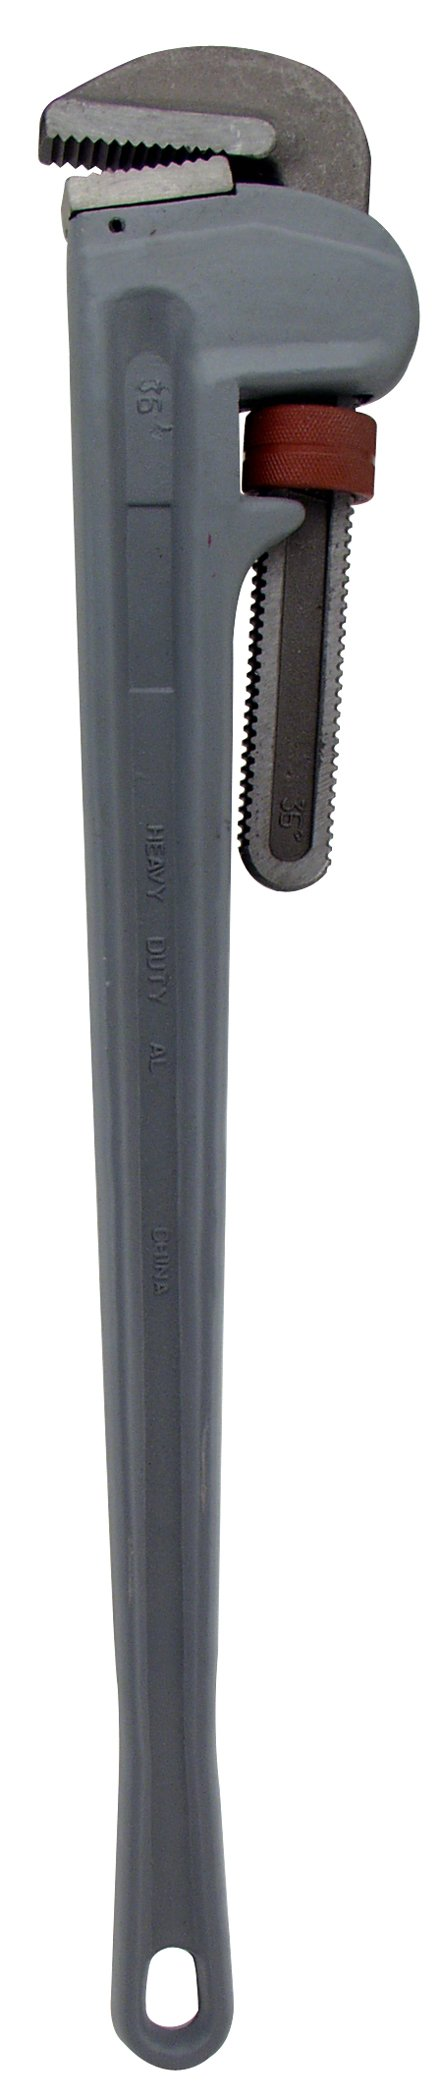 GreatNeck APW36 Aluminum Pipe Wrench, 36 Inch by Great Neck